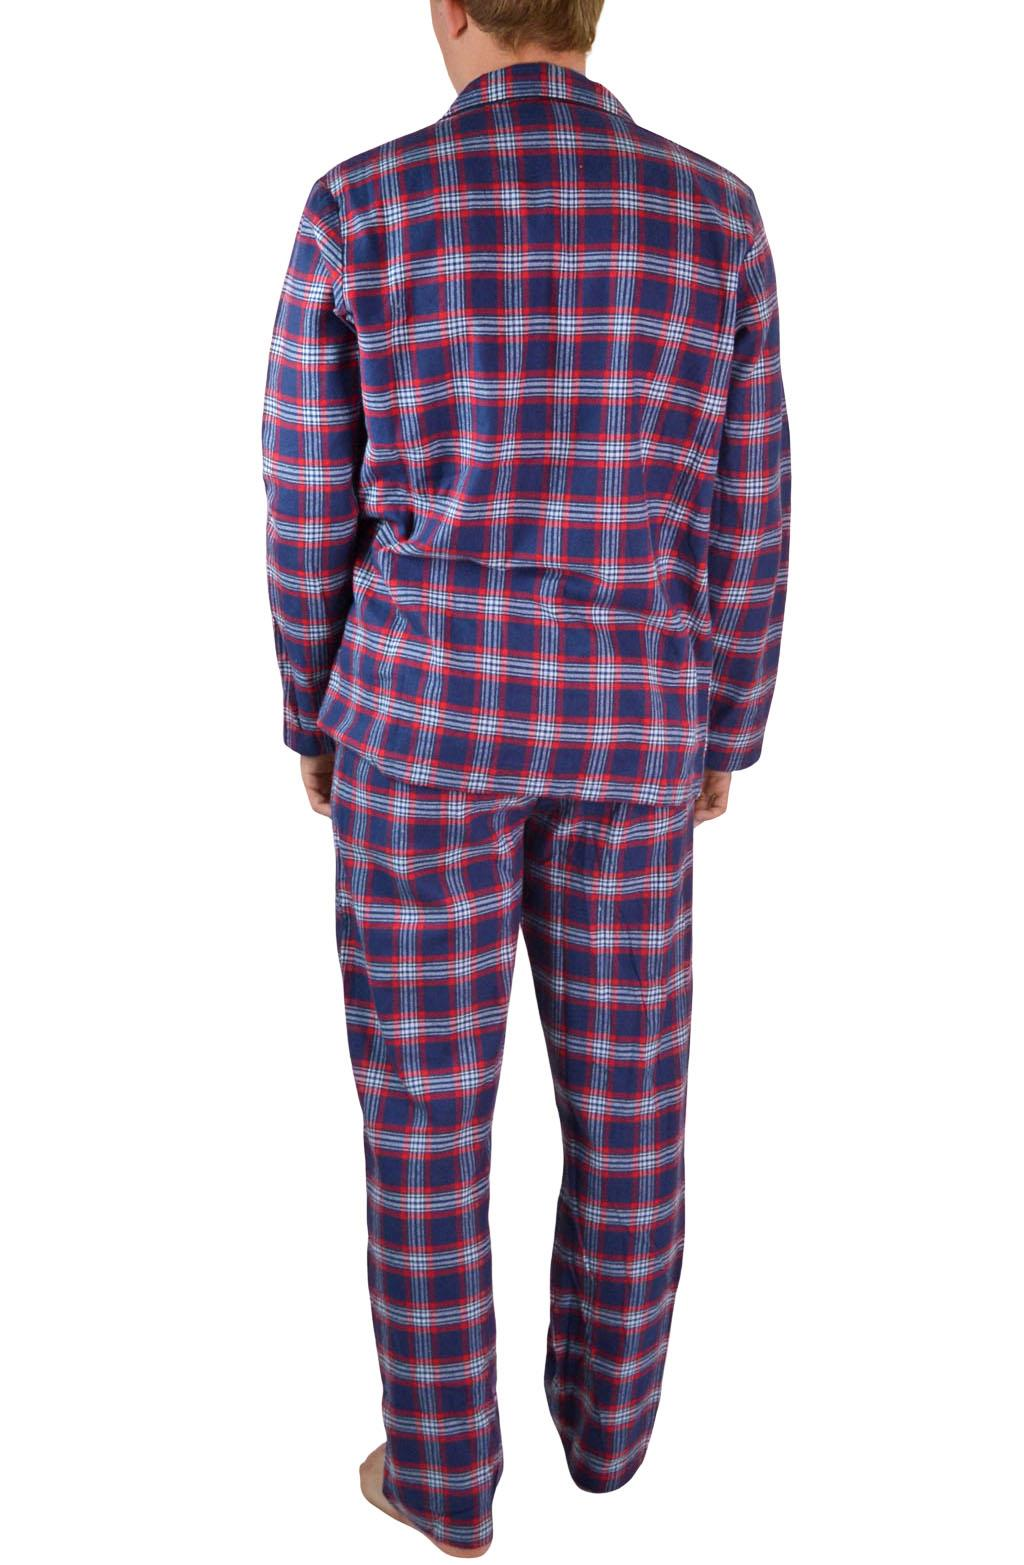 NEW-Mens-Brushed-Pure-Cotton-Check-Pyjamas-Flannelette-PJ-Set-in-Blue-Red-Grey thumbnail 15